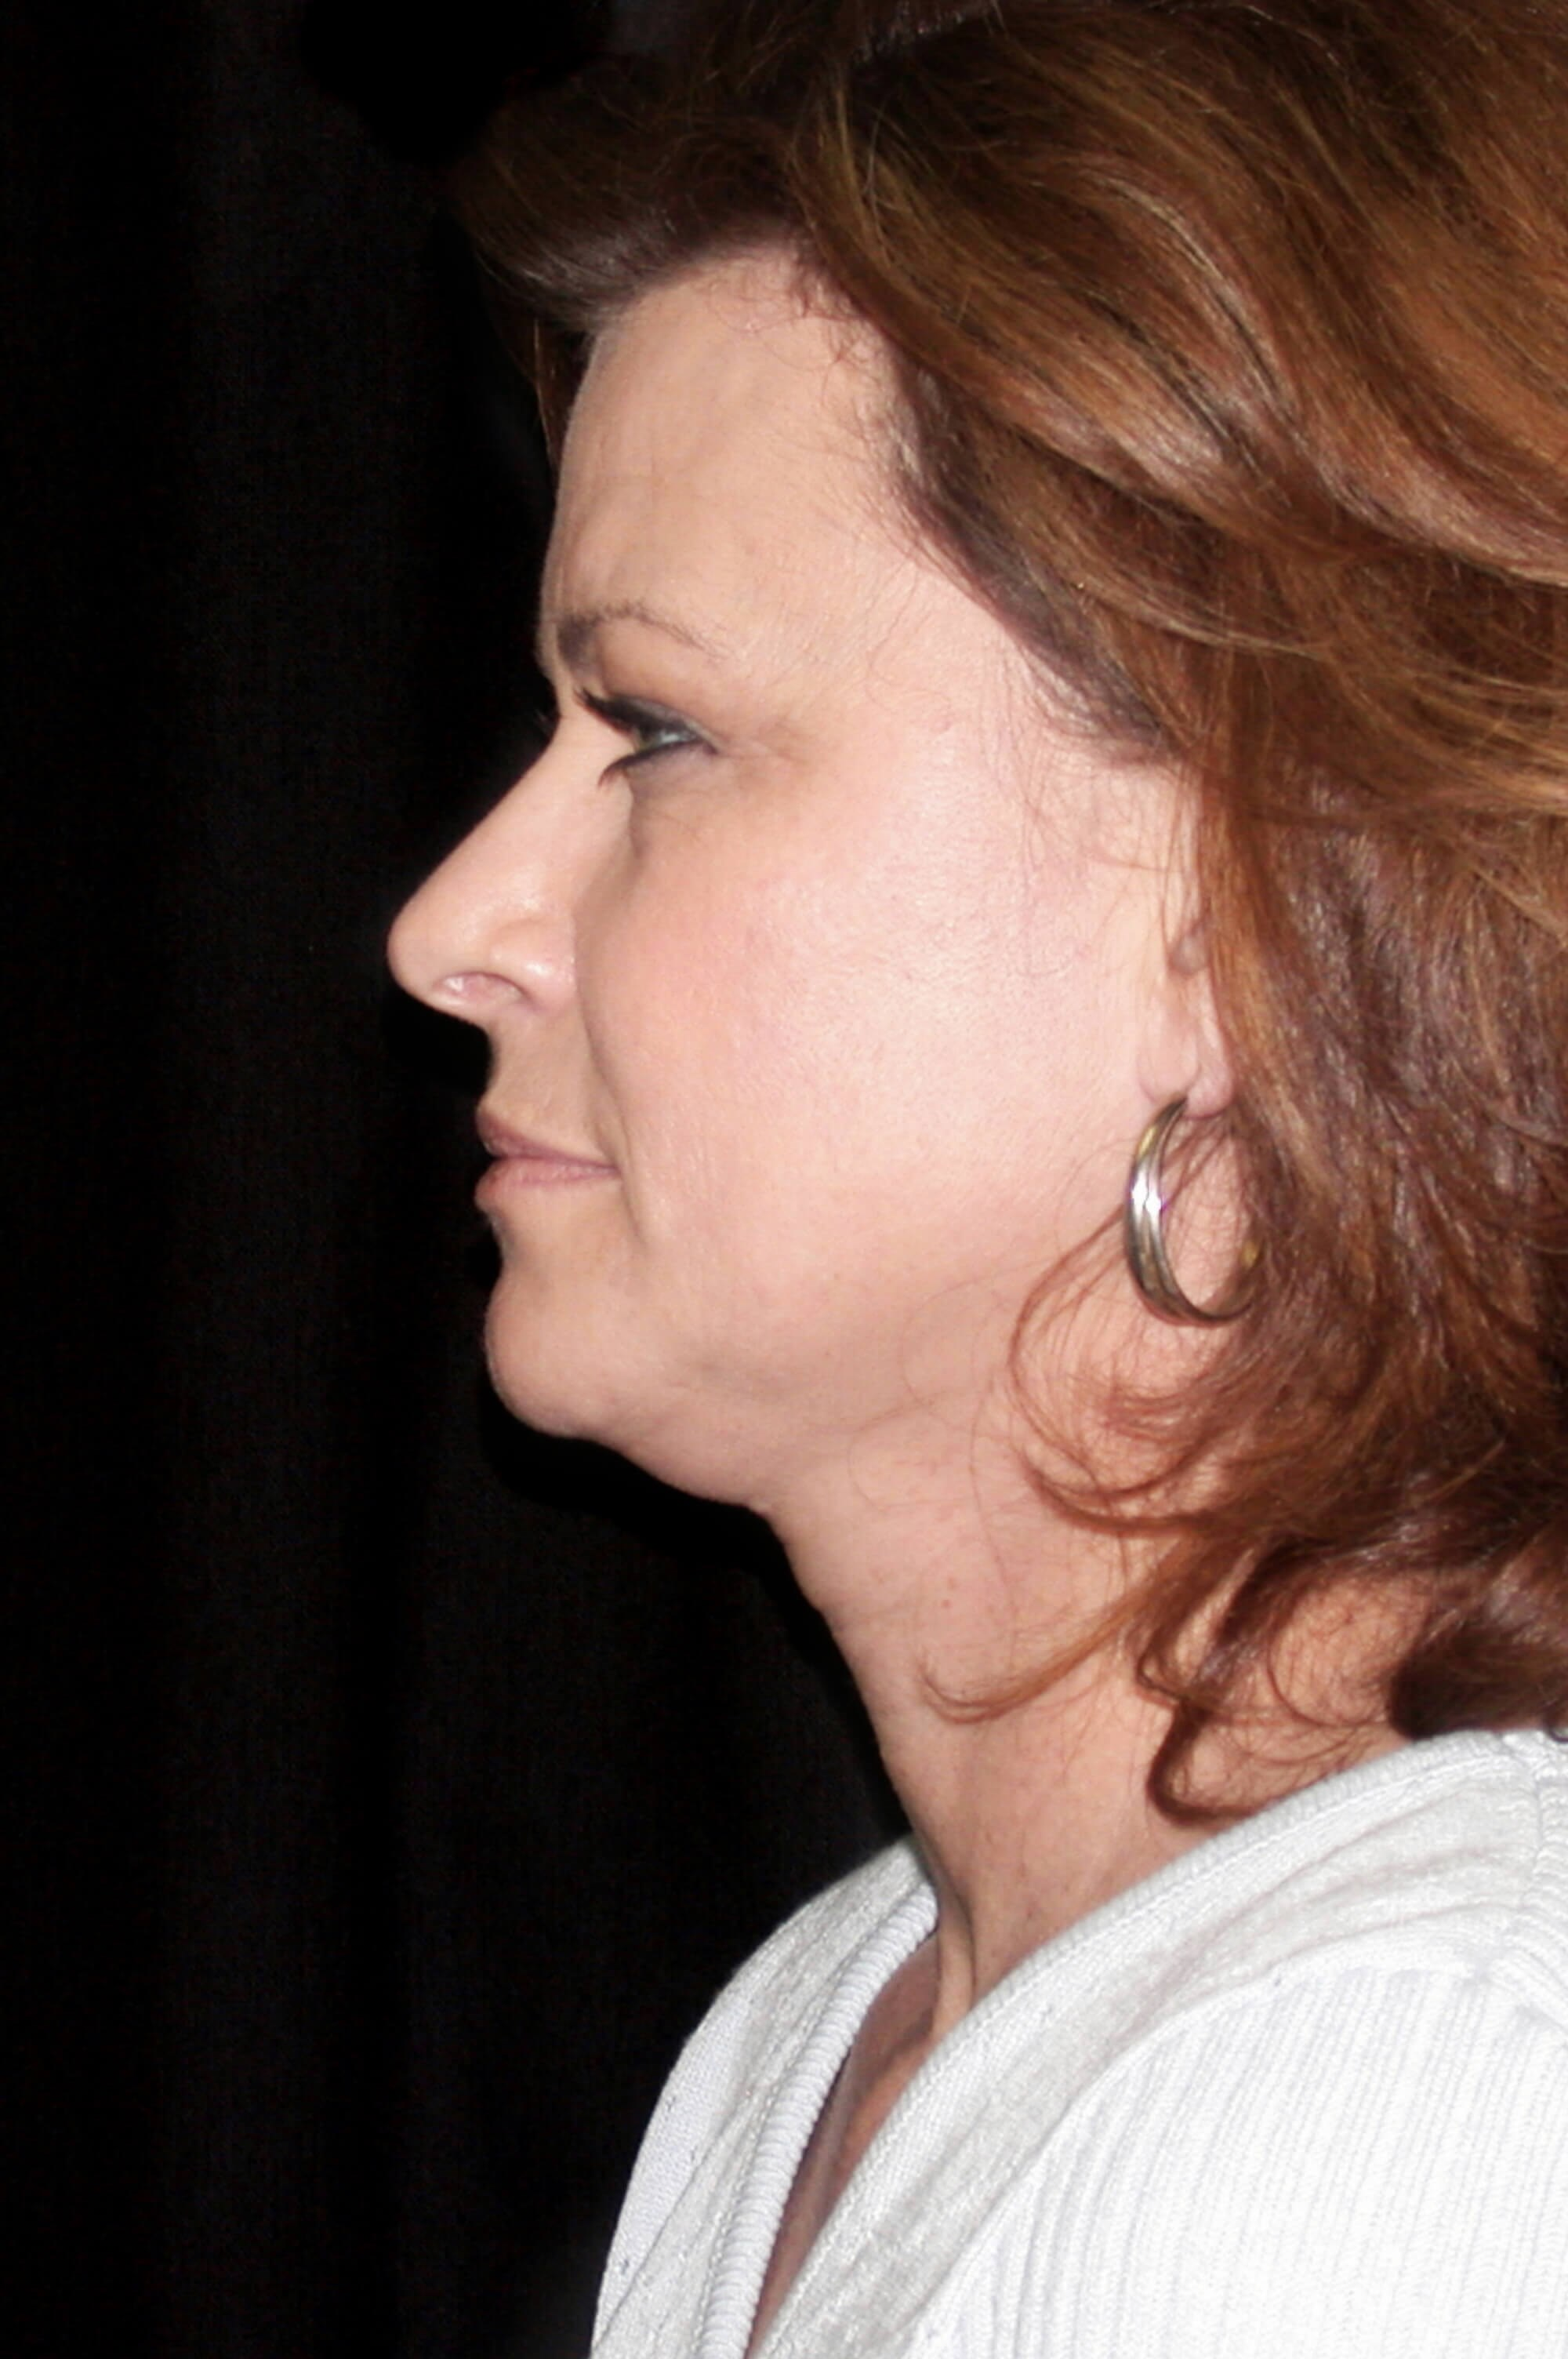 DALLAS, TEXAS WOMAN REJUVENATES LOOK WITH FACELIFT AND NECK LIFT